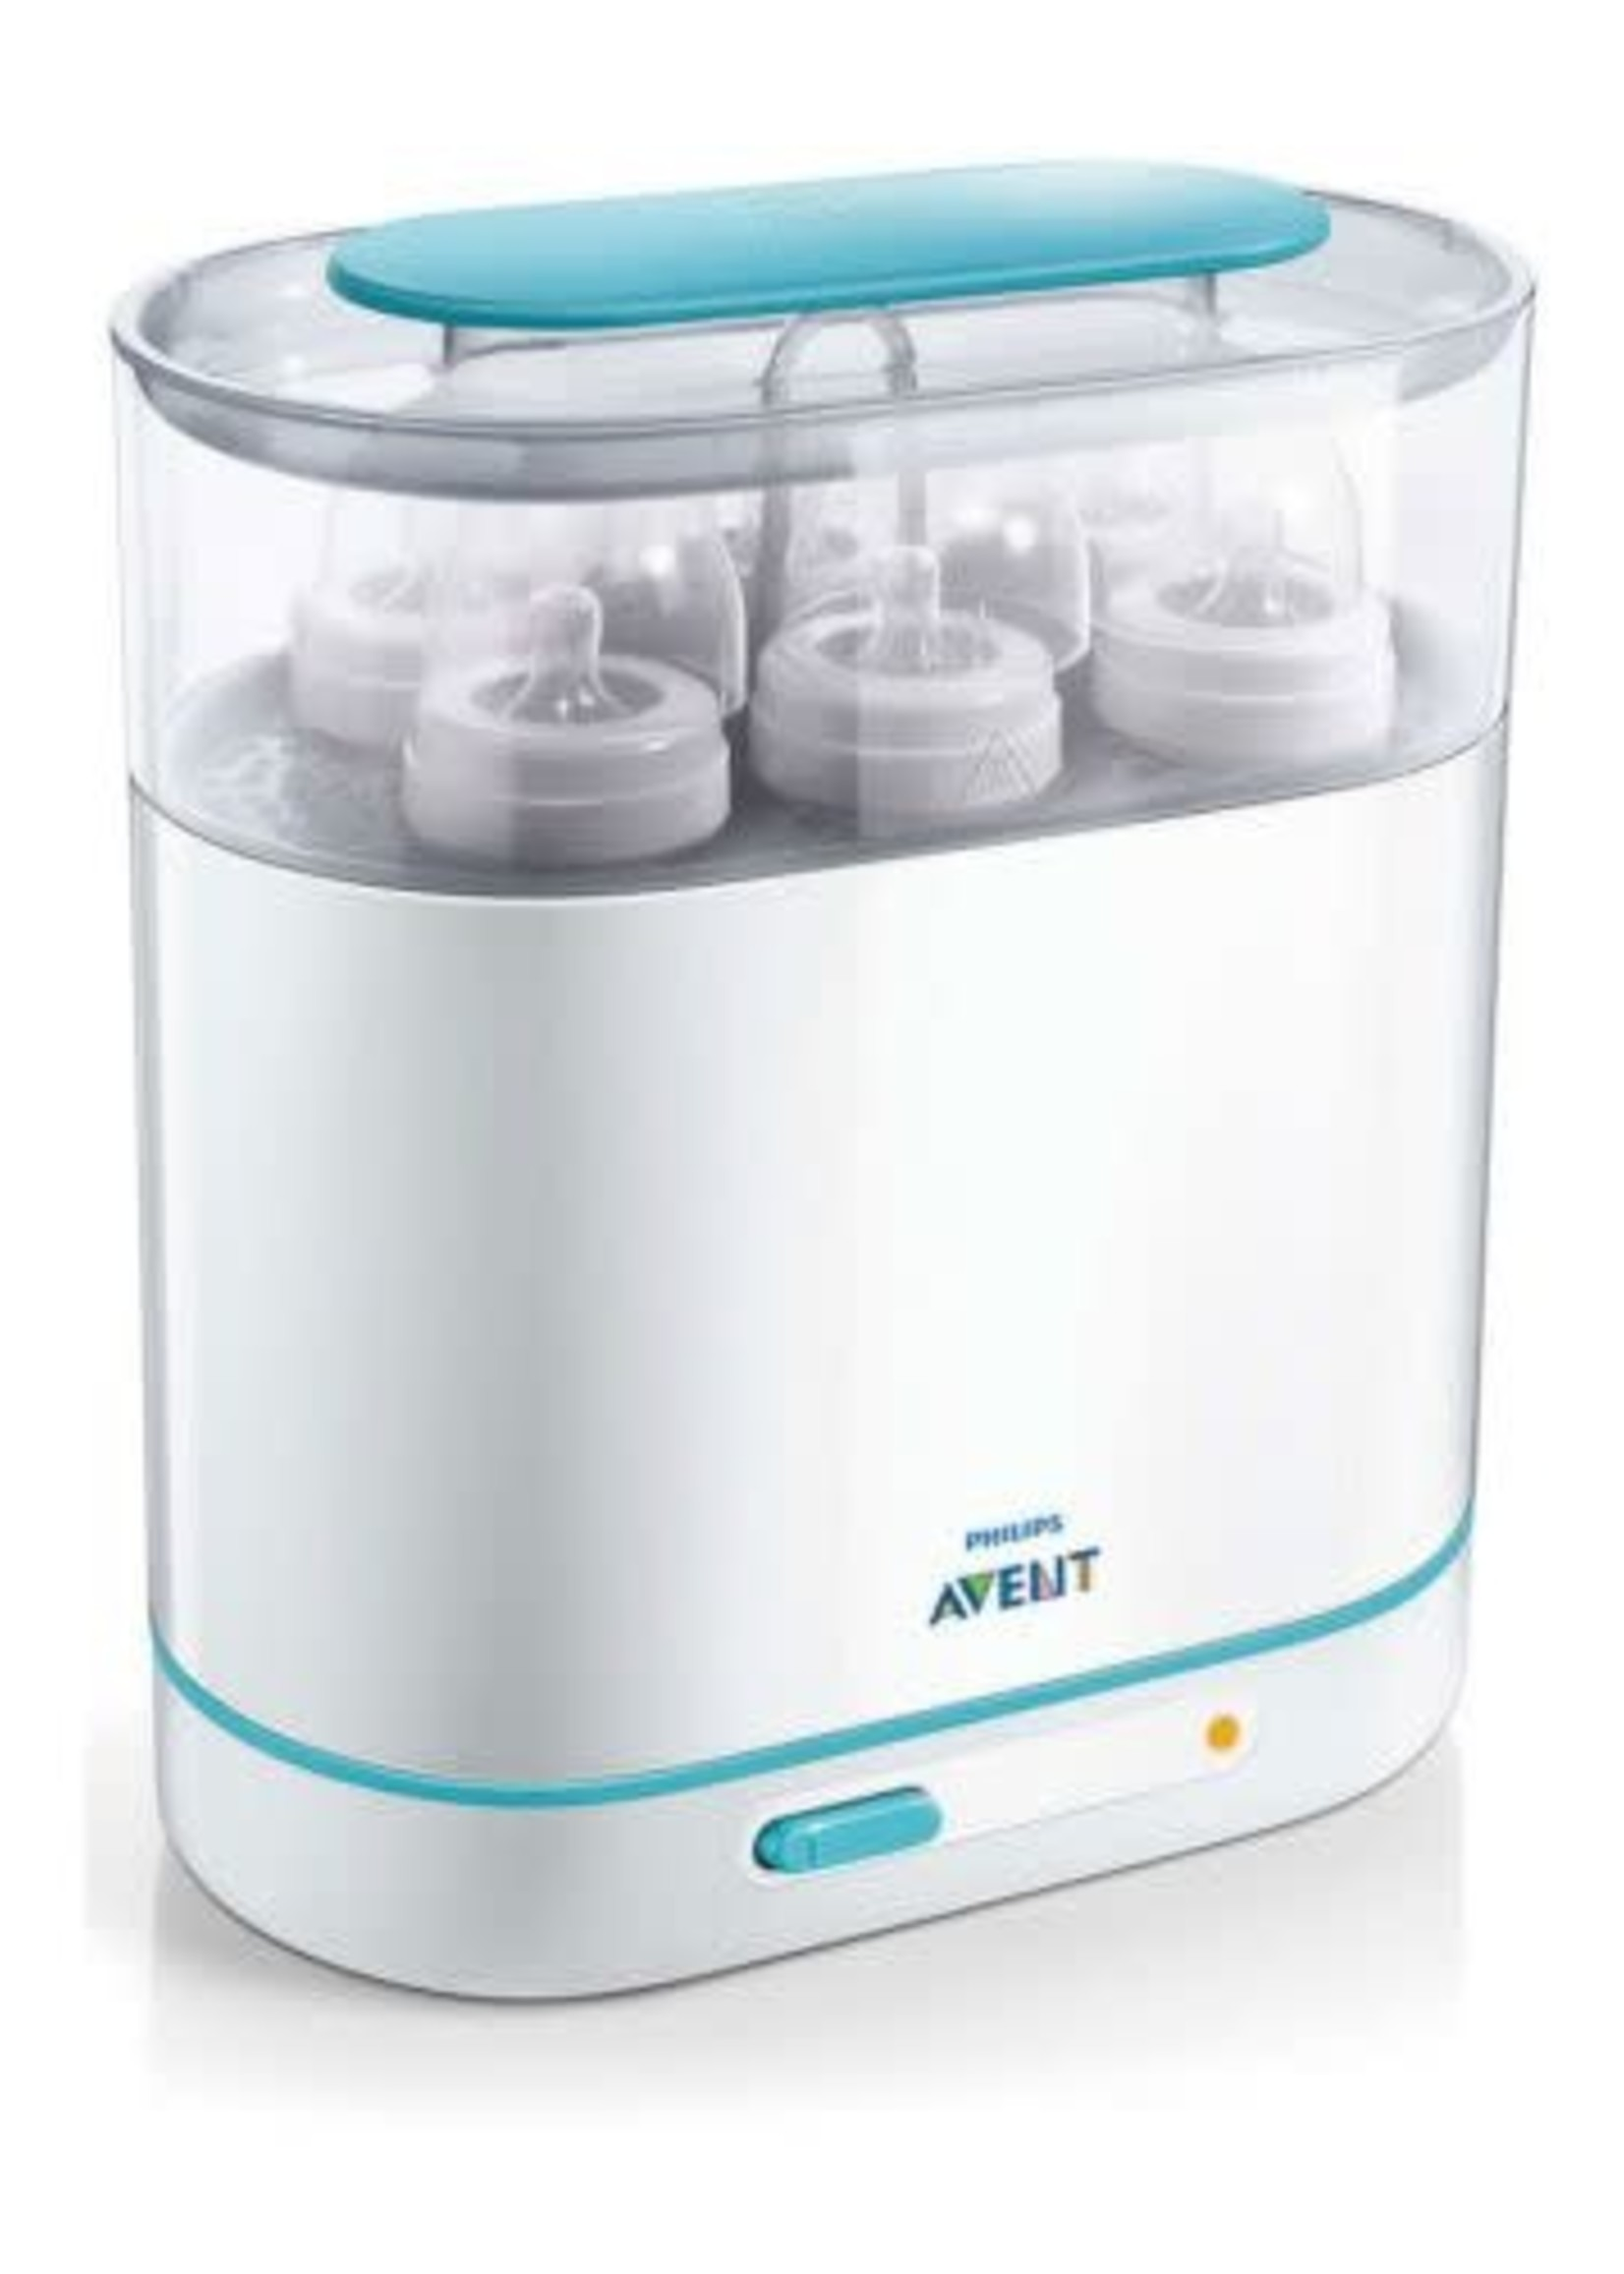 Philips Avent Philips Avent electric steam sterilizer